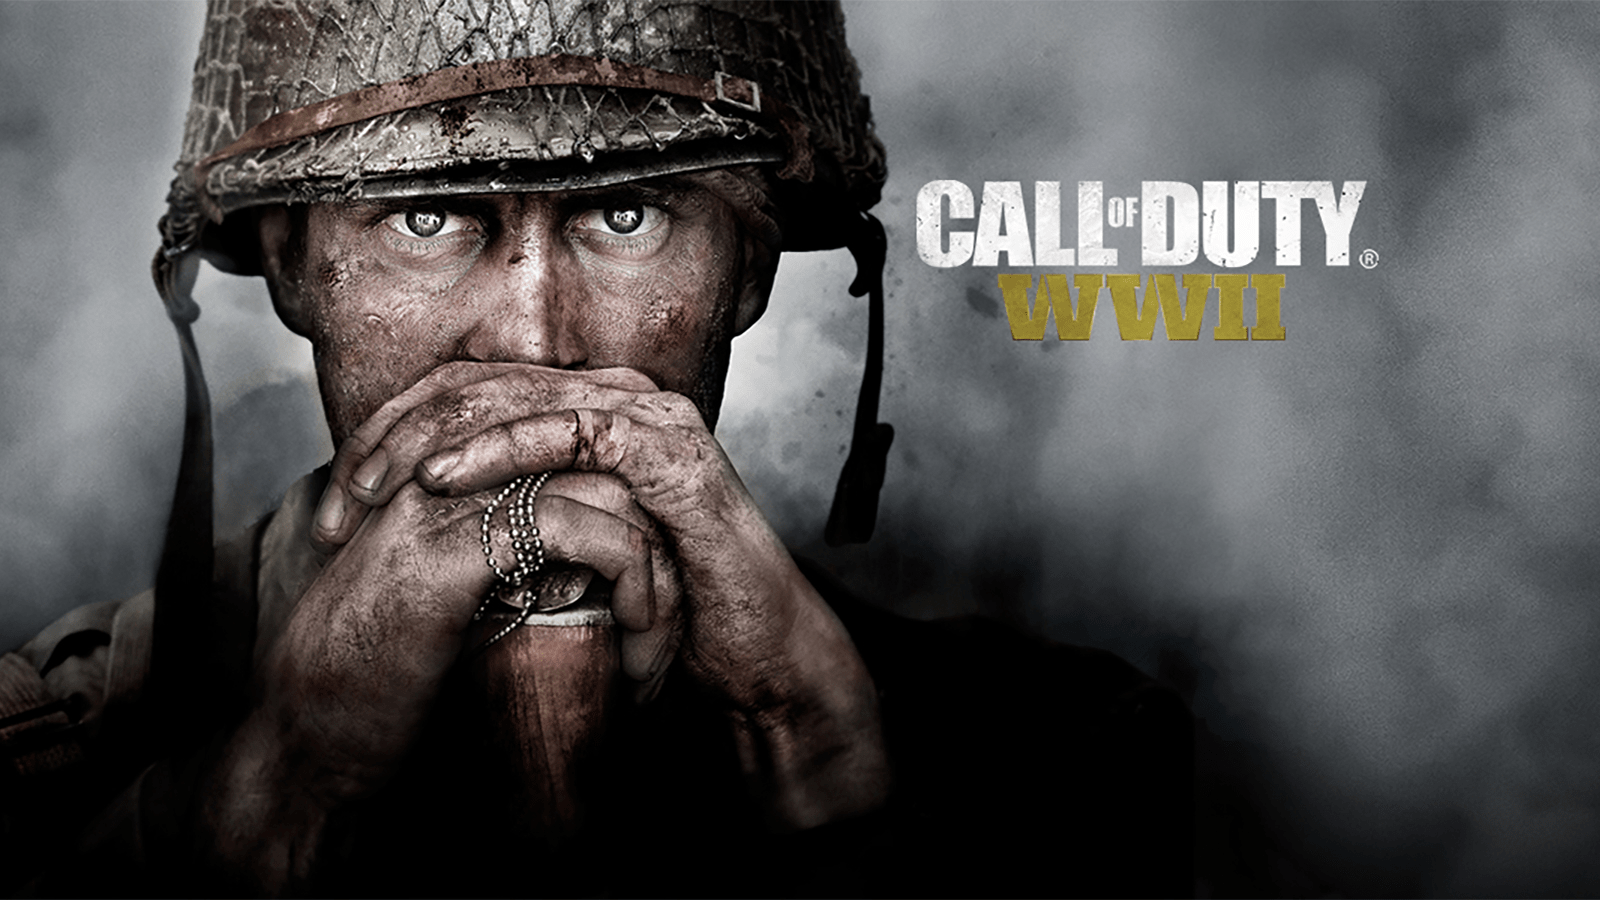 PC Call of Duty: WWII SaveGame - Save File Download